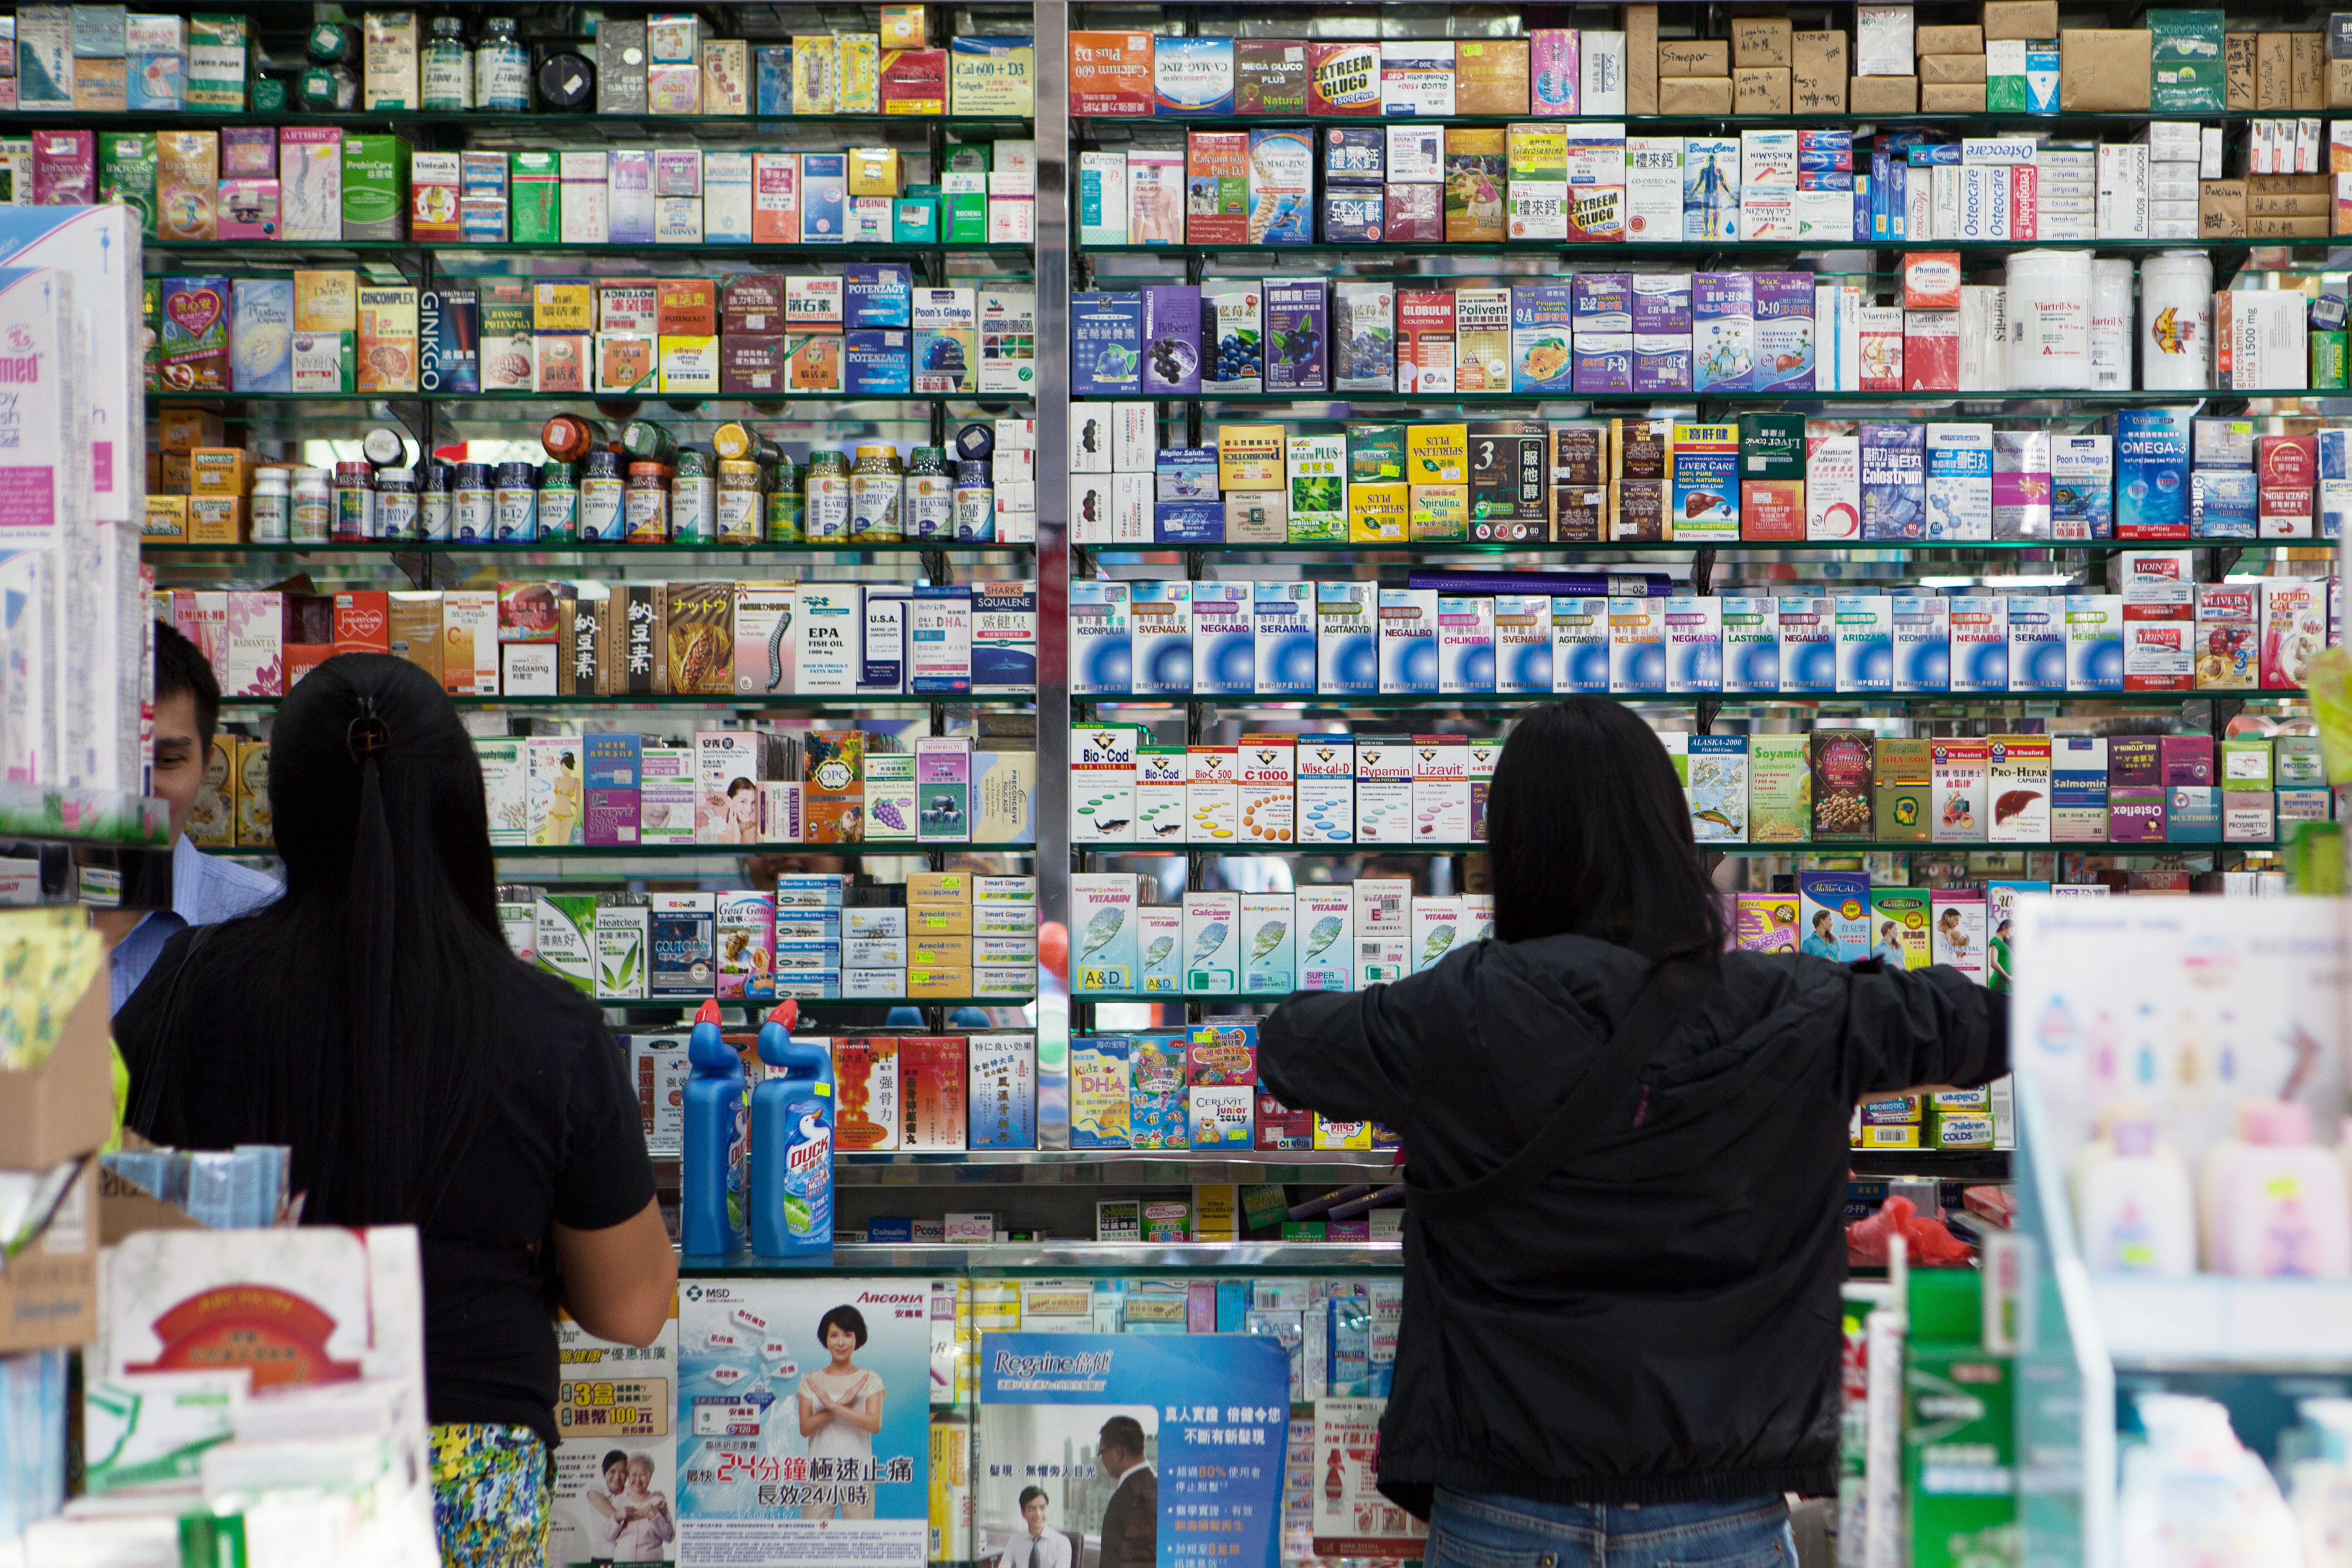 This picture taken on Nov. 18, 2013, shows customers buying goods in an independent pharmacy in Hong Kong. Safety fears over medication in mainland China are driving a risky illegal trade in cancer drugs in Hong Kong, experts say